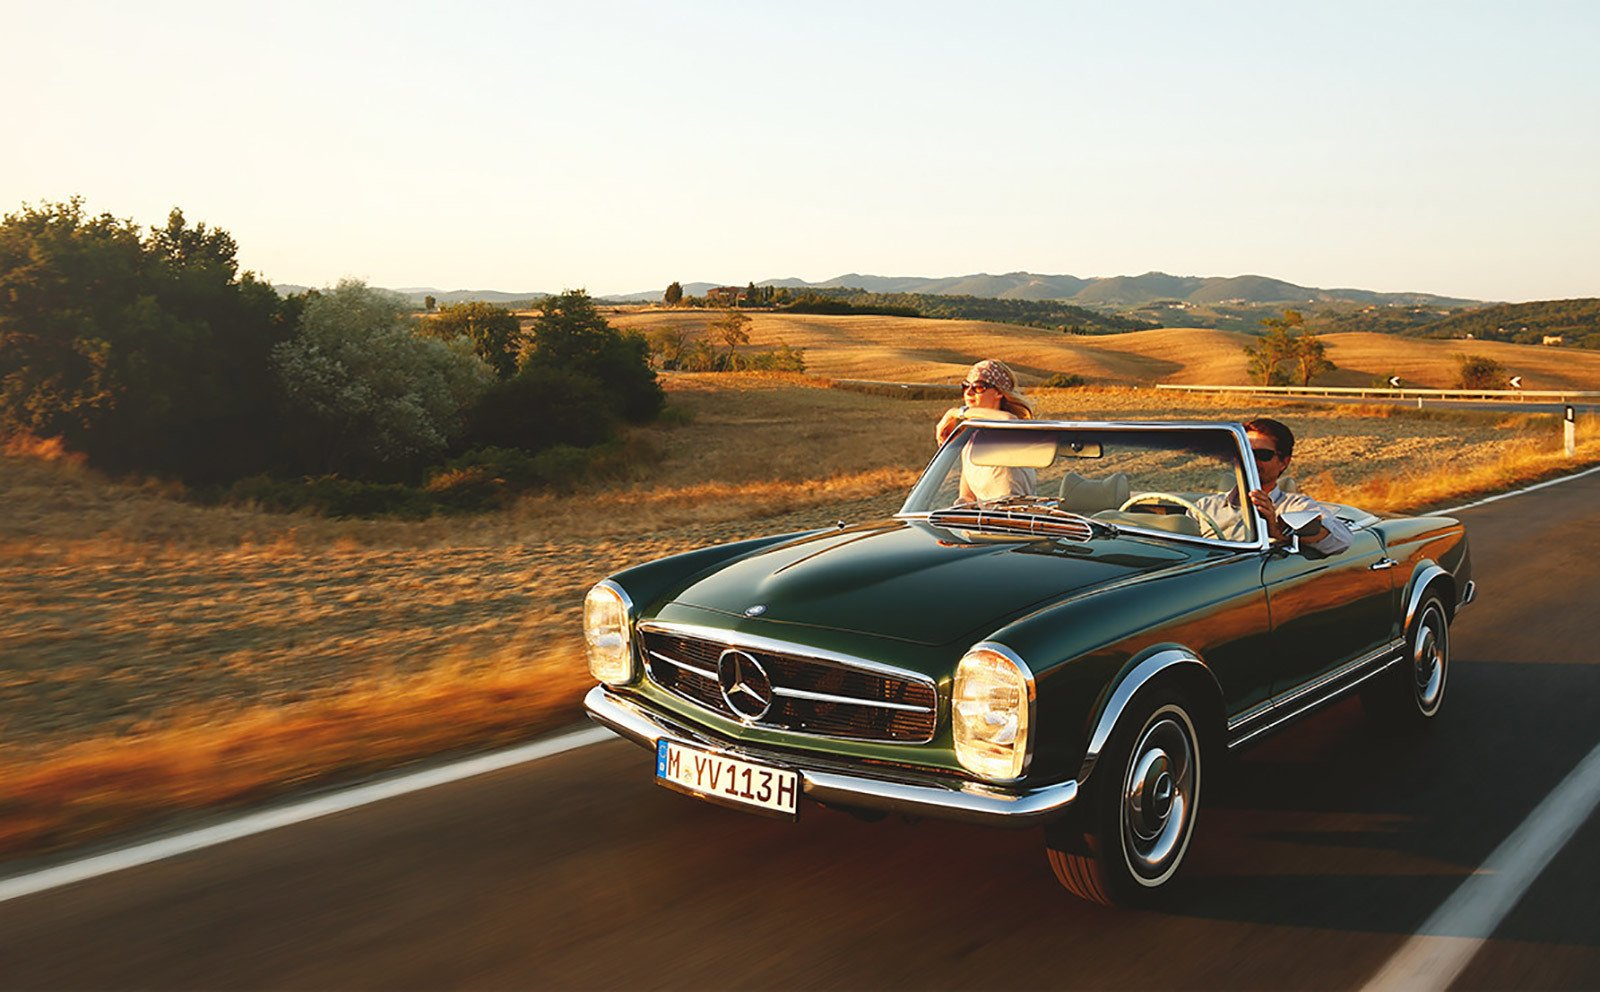 Photo 2 of 6 in Mercedes-Benz Classic Car Travel